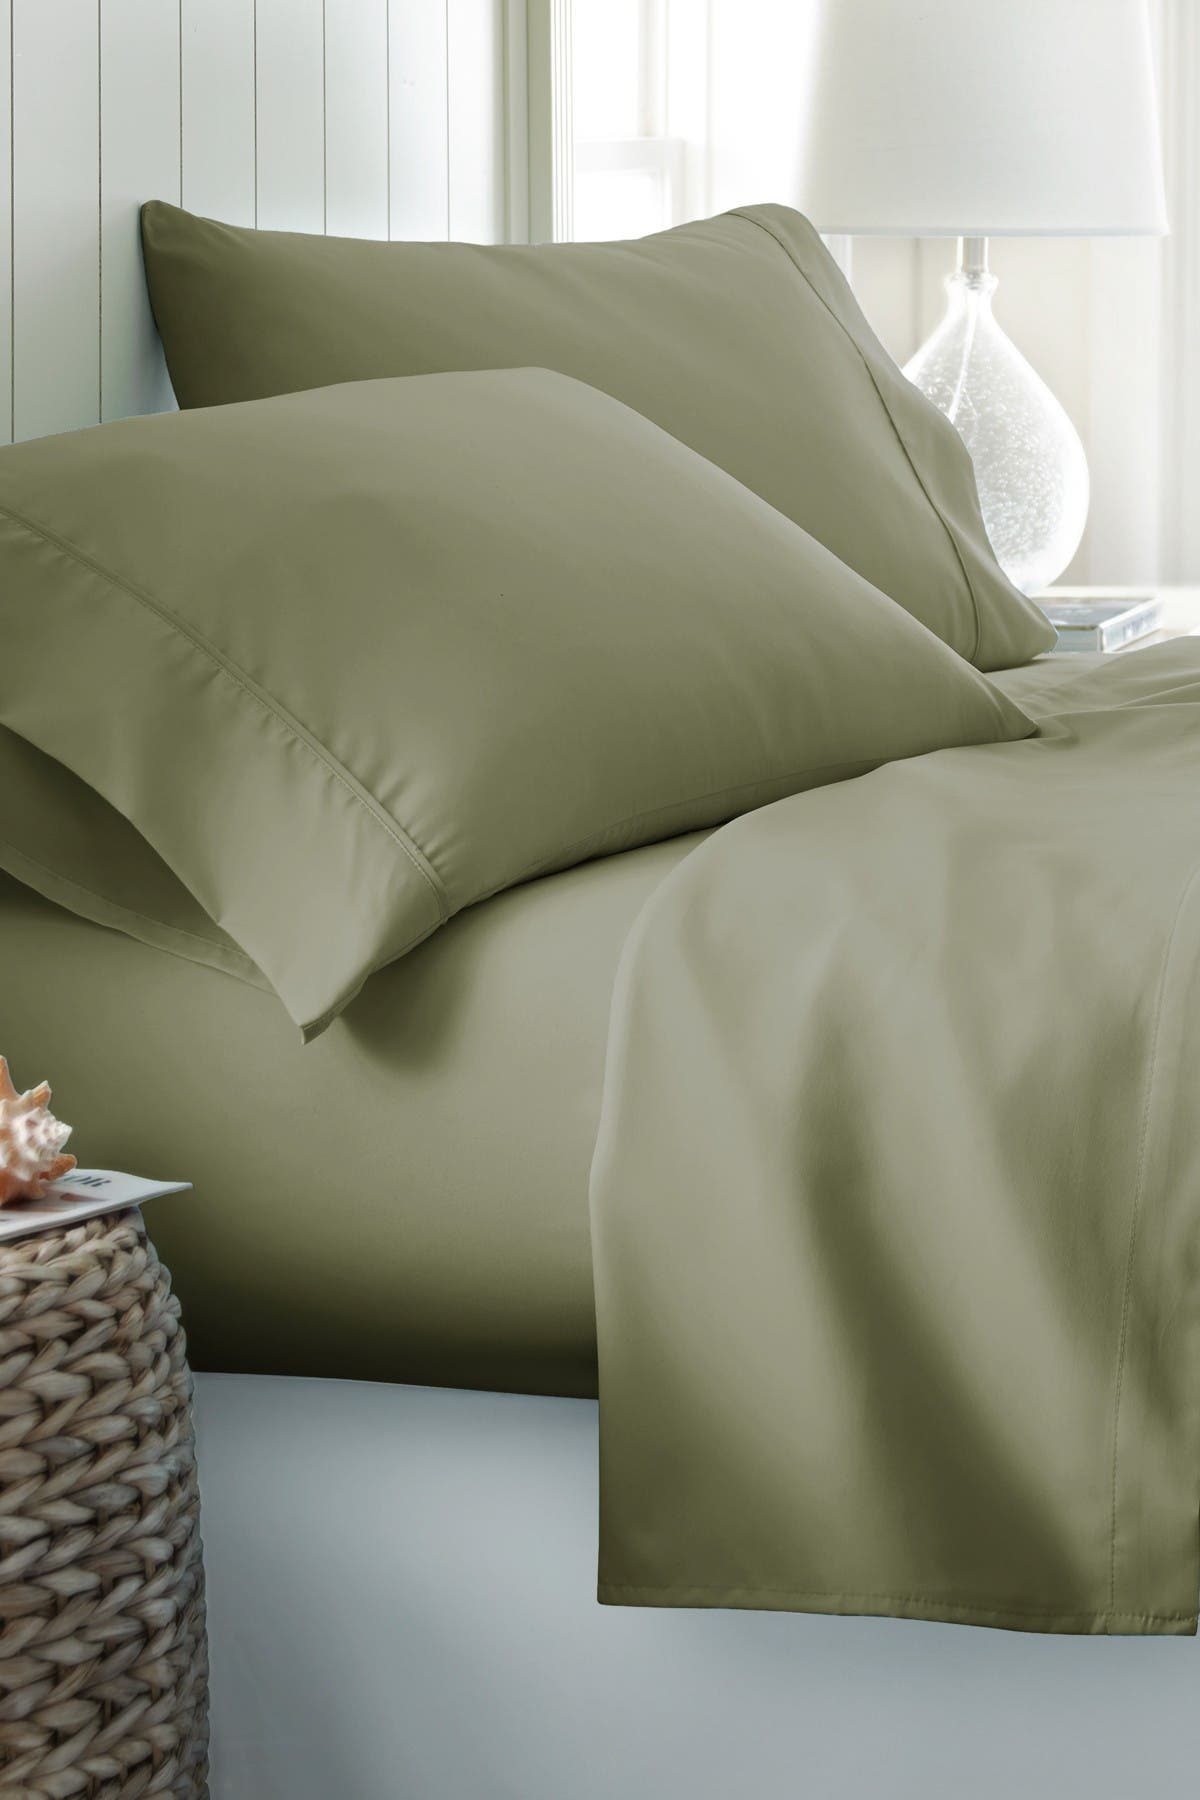 Image of IENJOY HOME Twin-XL Hotel Collection Premium Ultra Soft 4-Piece Bed Sheet Set - Sage